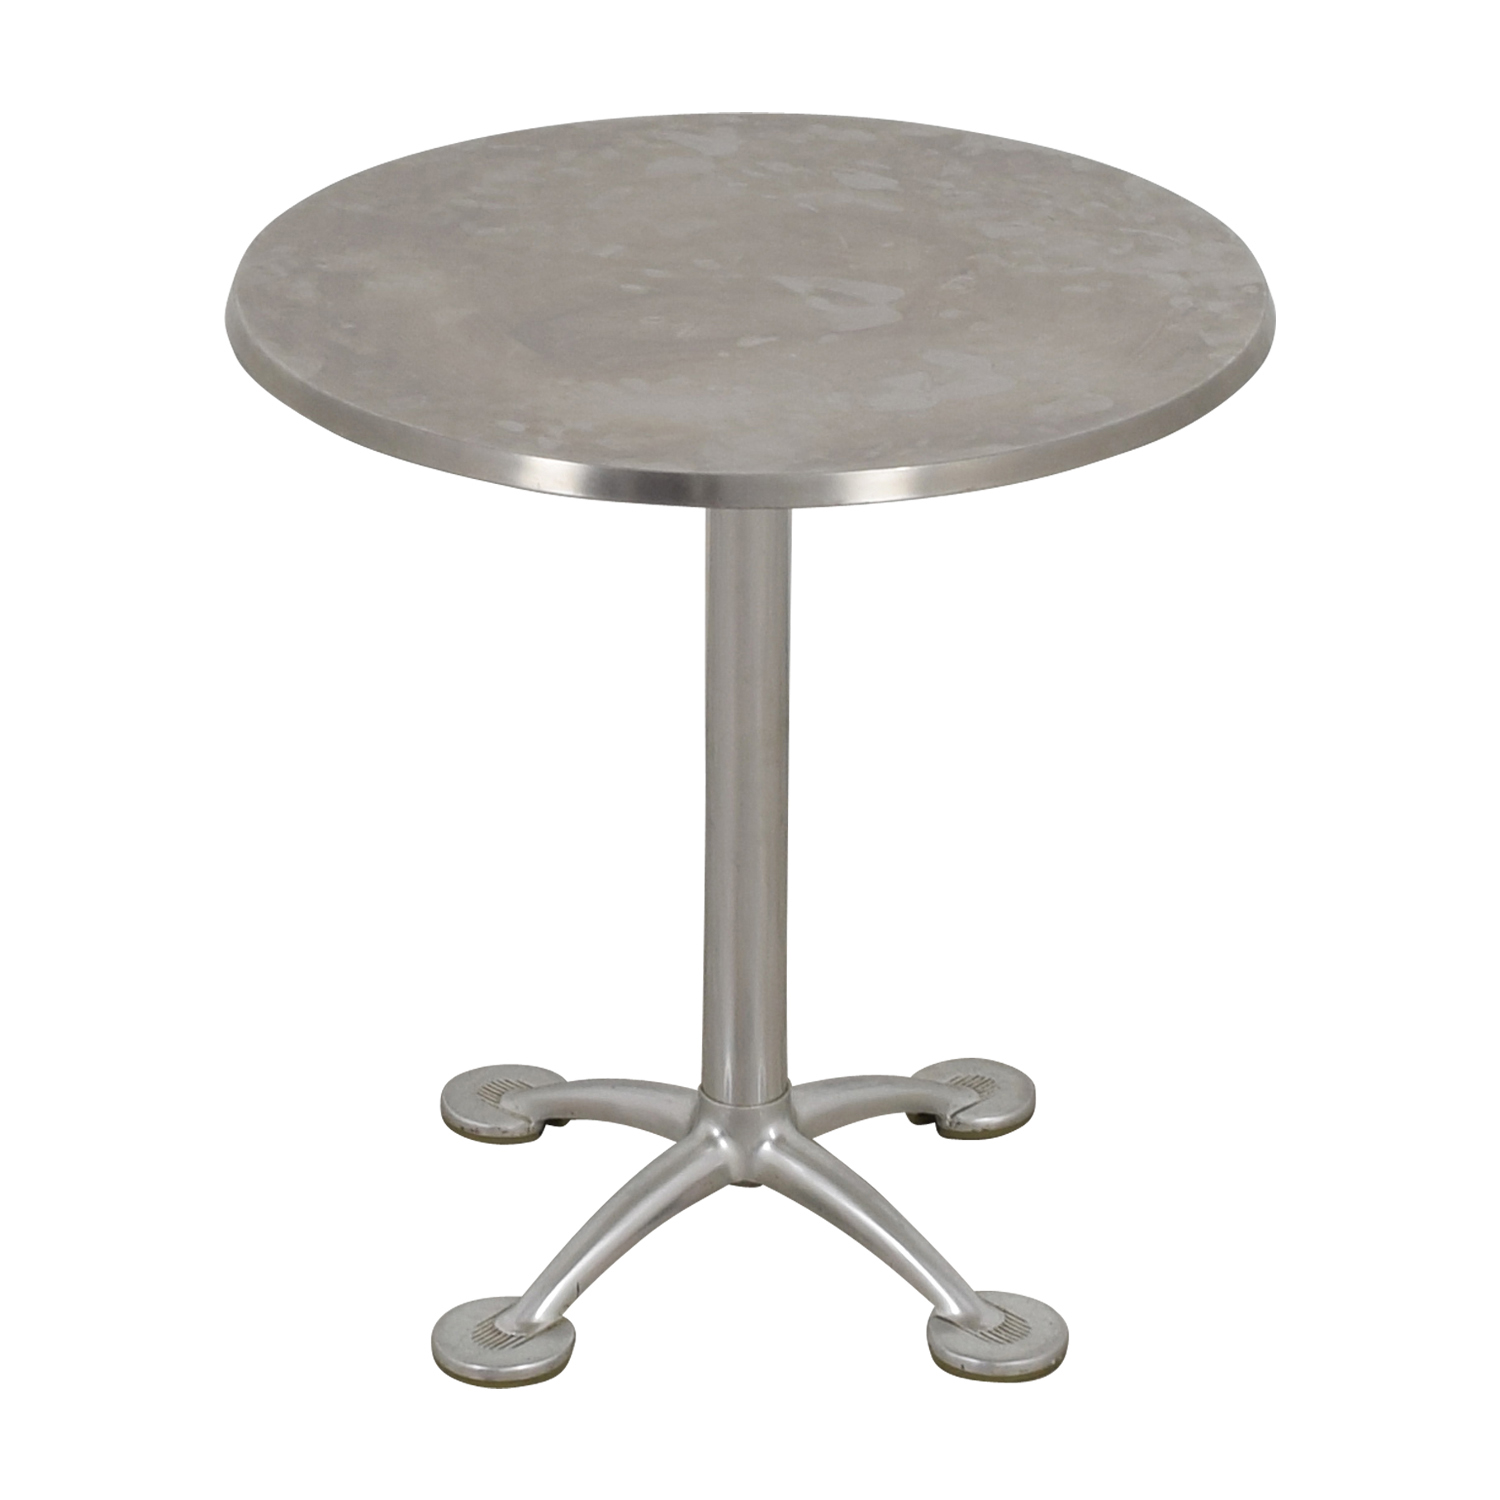 KFI KFI Chrome Round Pedestal Table nj